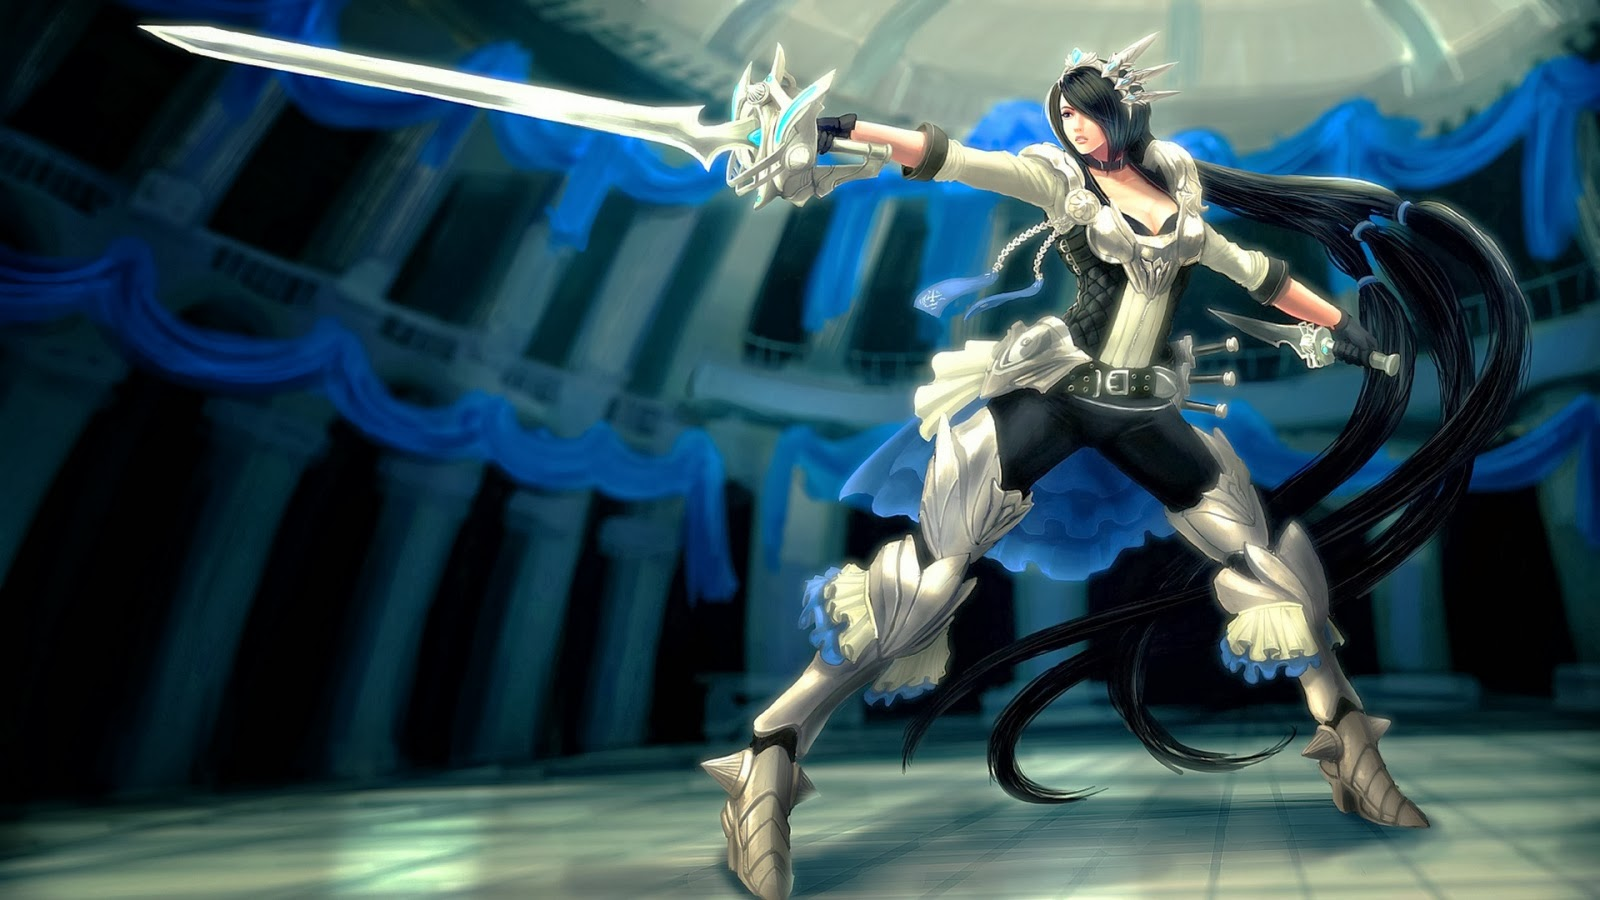 League Of Legends Wallpaper And Cover Photos Blog Fiora League Of